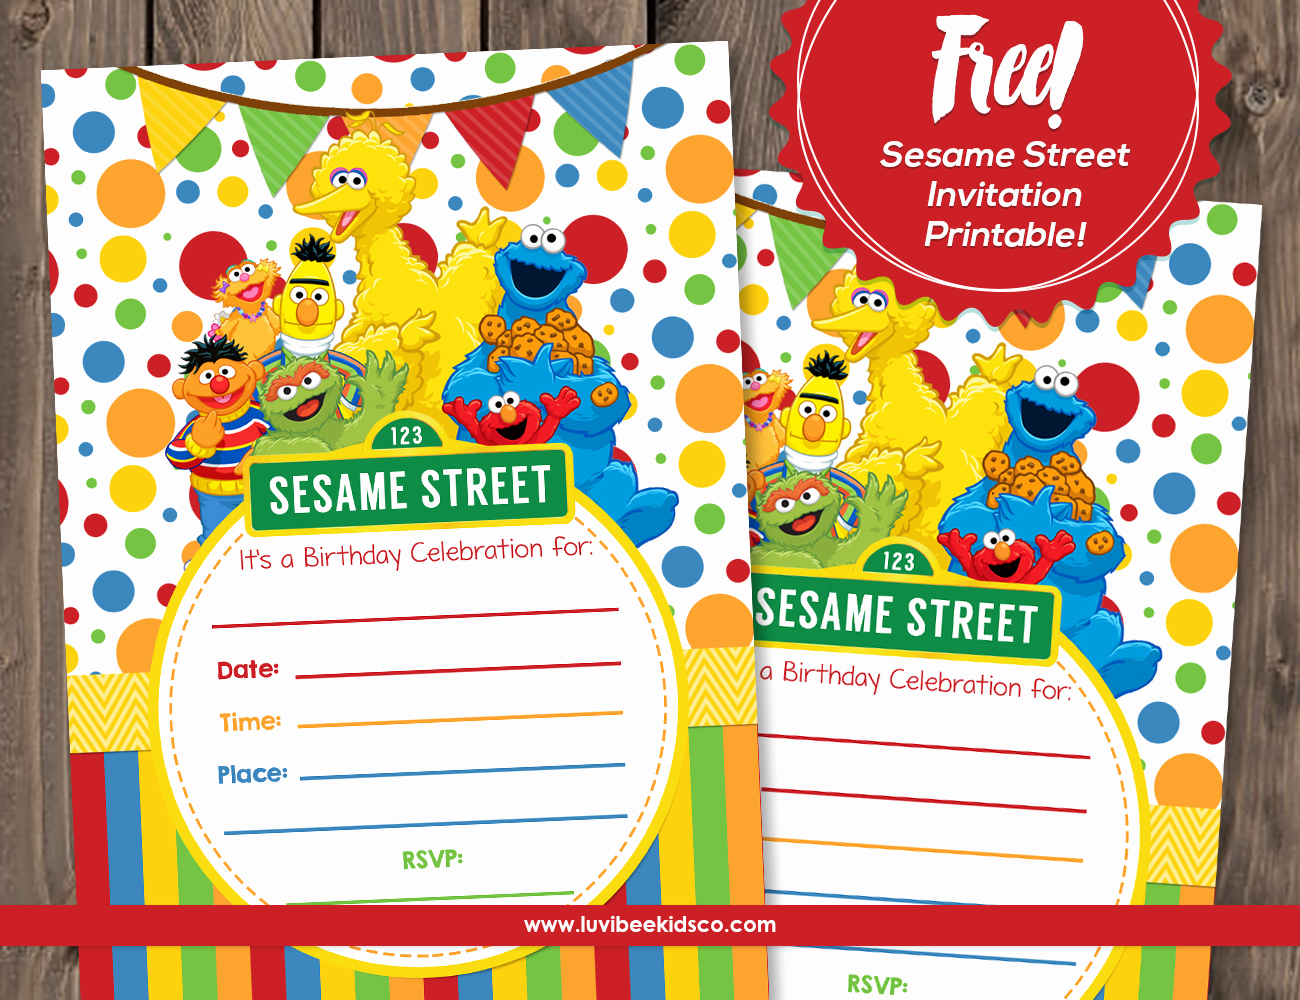 Sesame Street Invitation Templates Fresh Sesame Street Free Printable Invitation